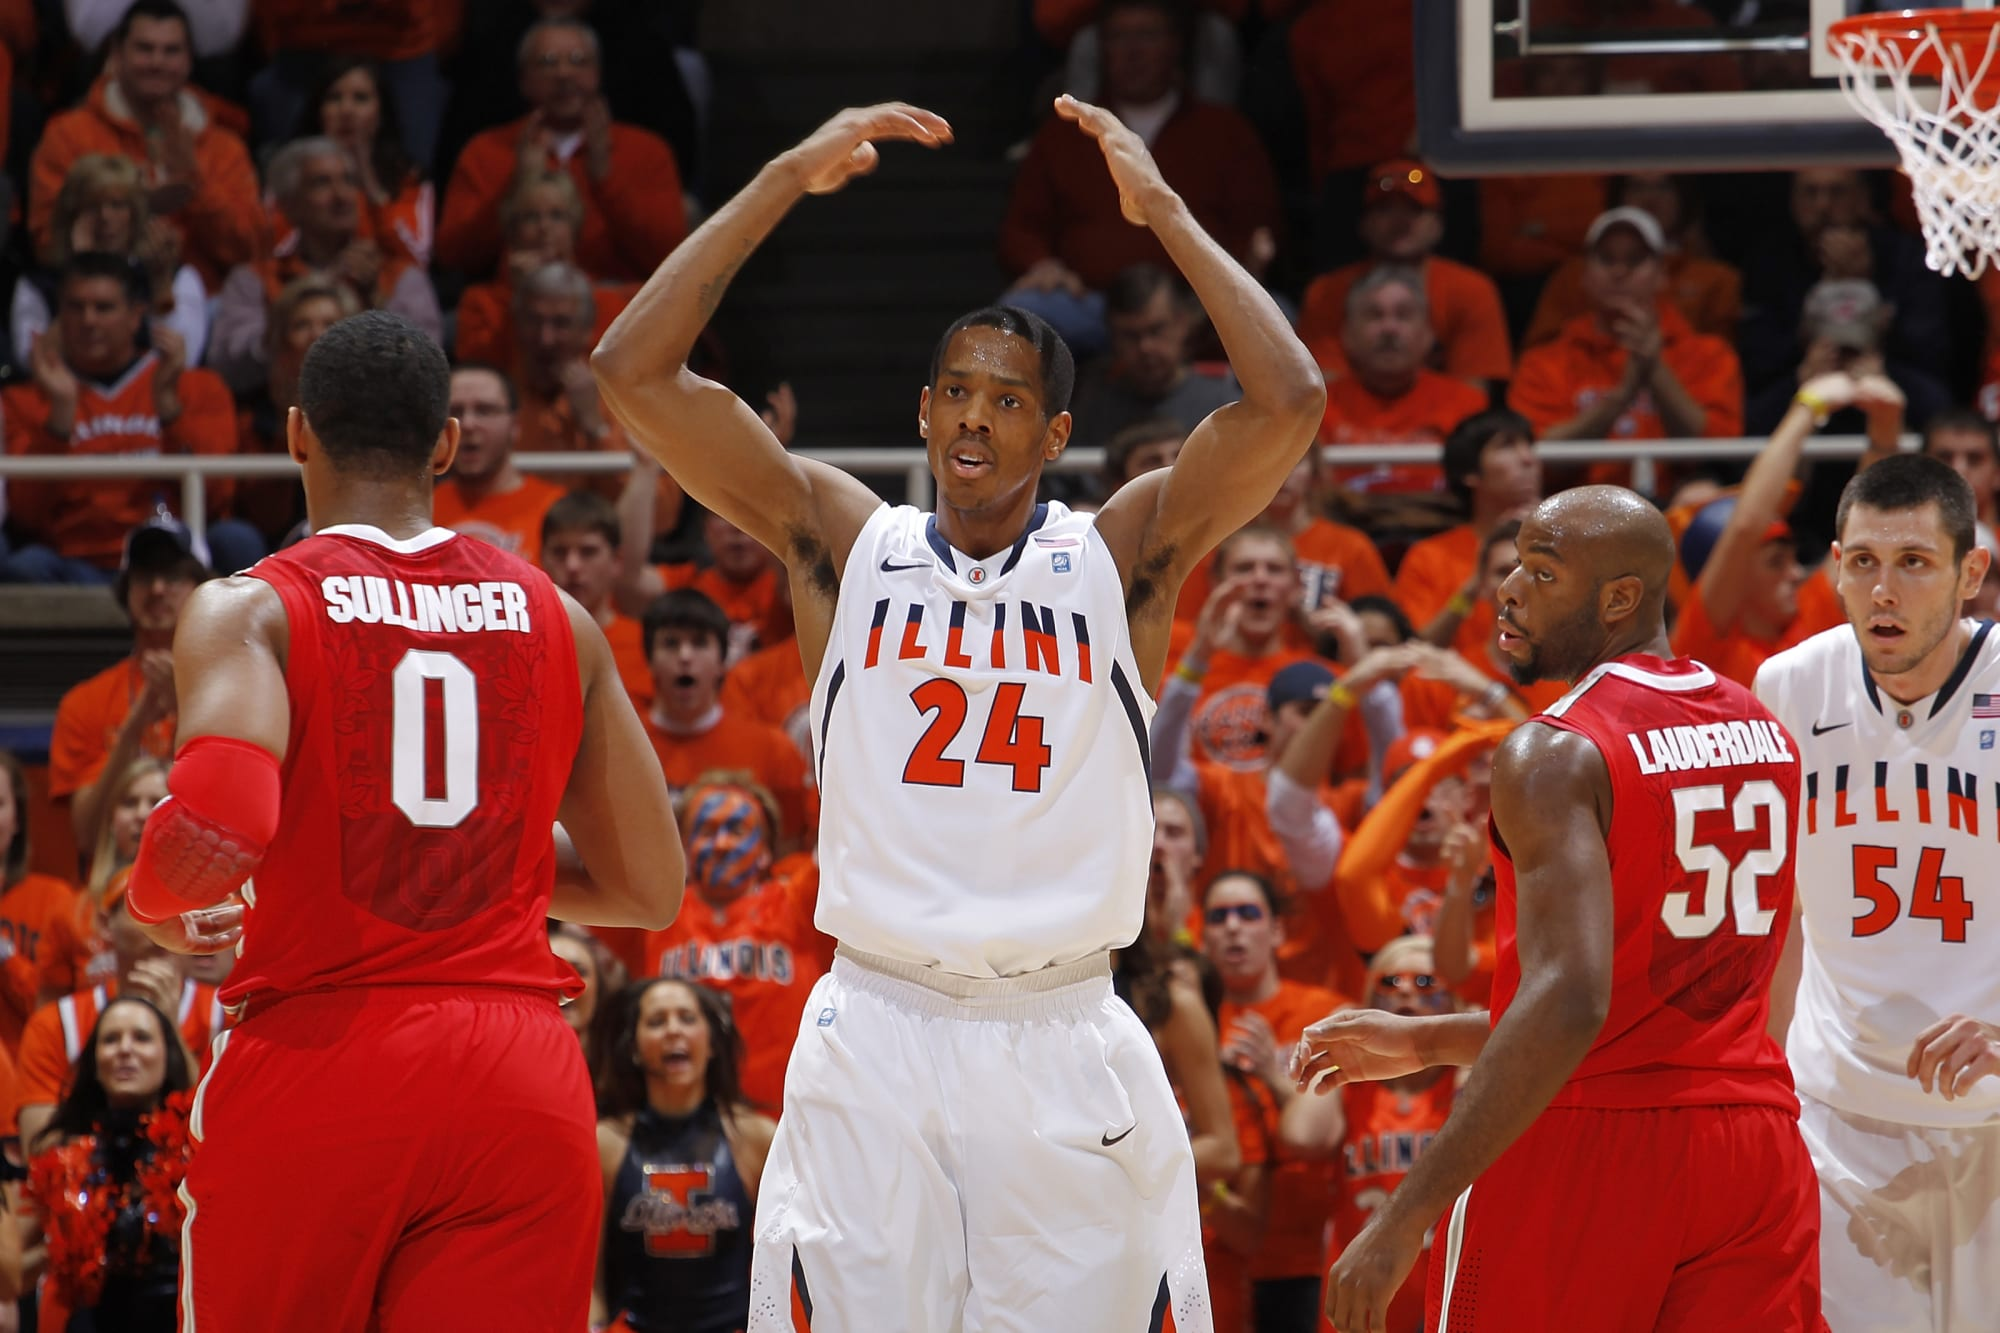 Illinois Basketball: Top 5 Illini wing-forwards of the 2010s